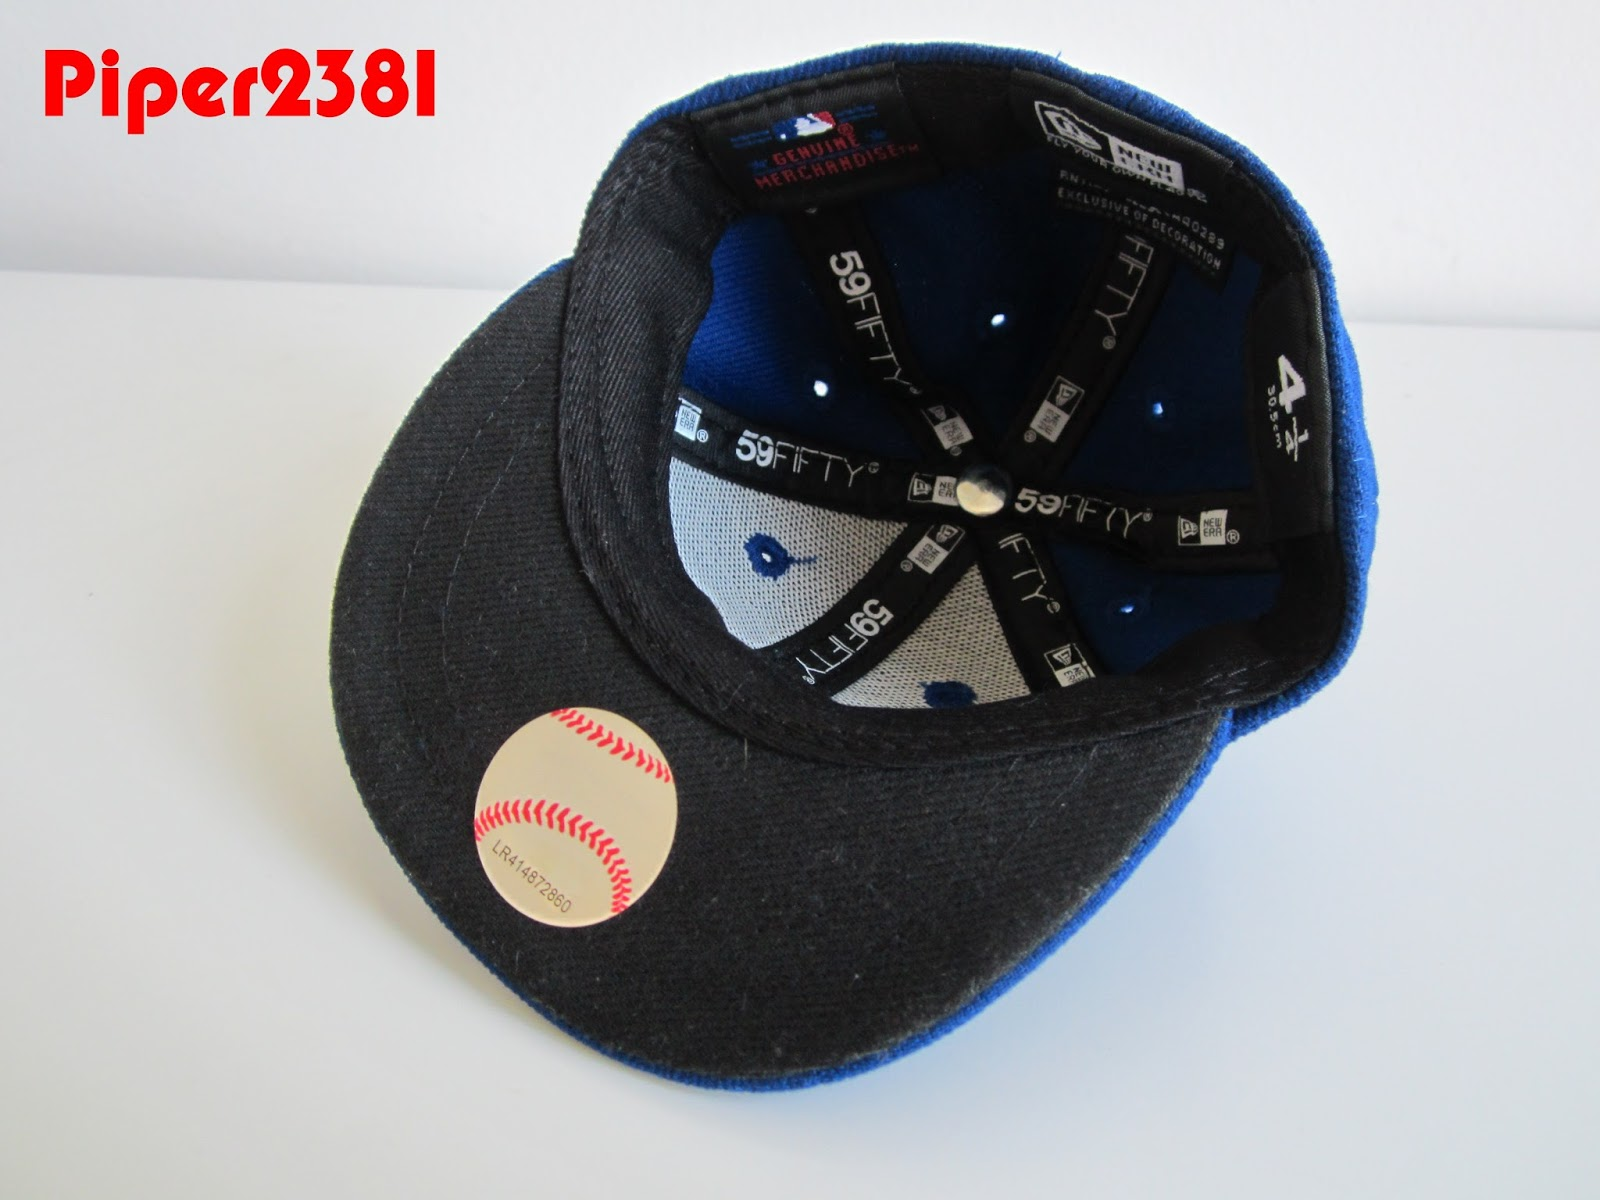 047992aea67 What makes these mini fitted caps so special is that they re exactly like  the regular on-field versions that New Era makes